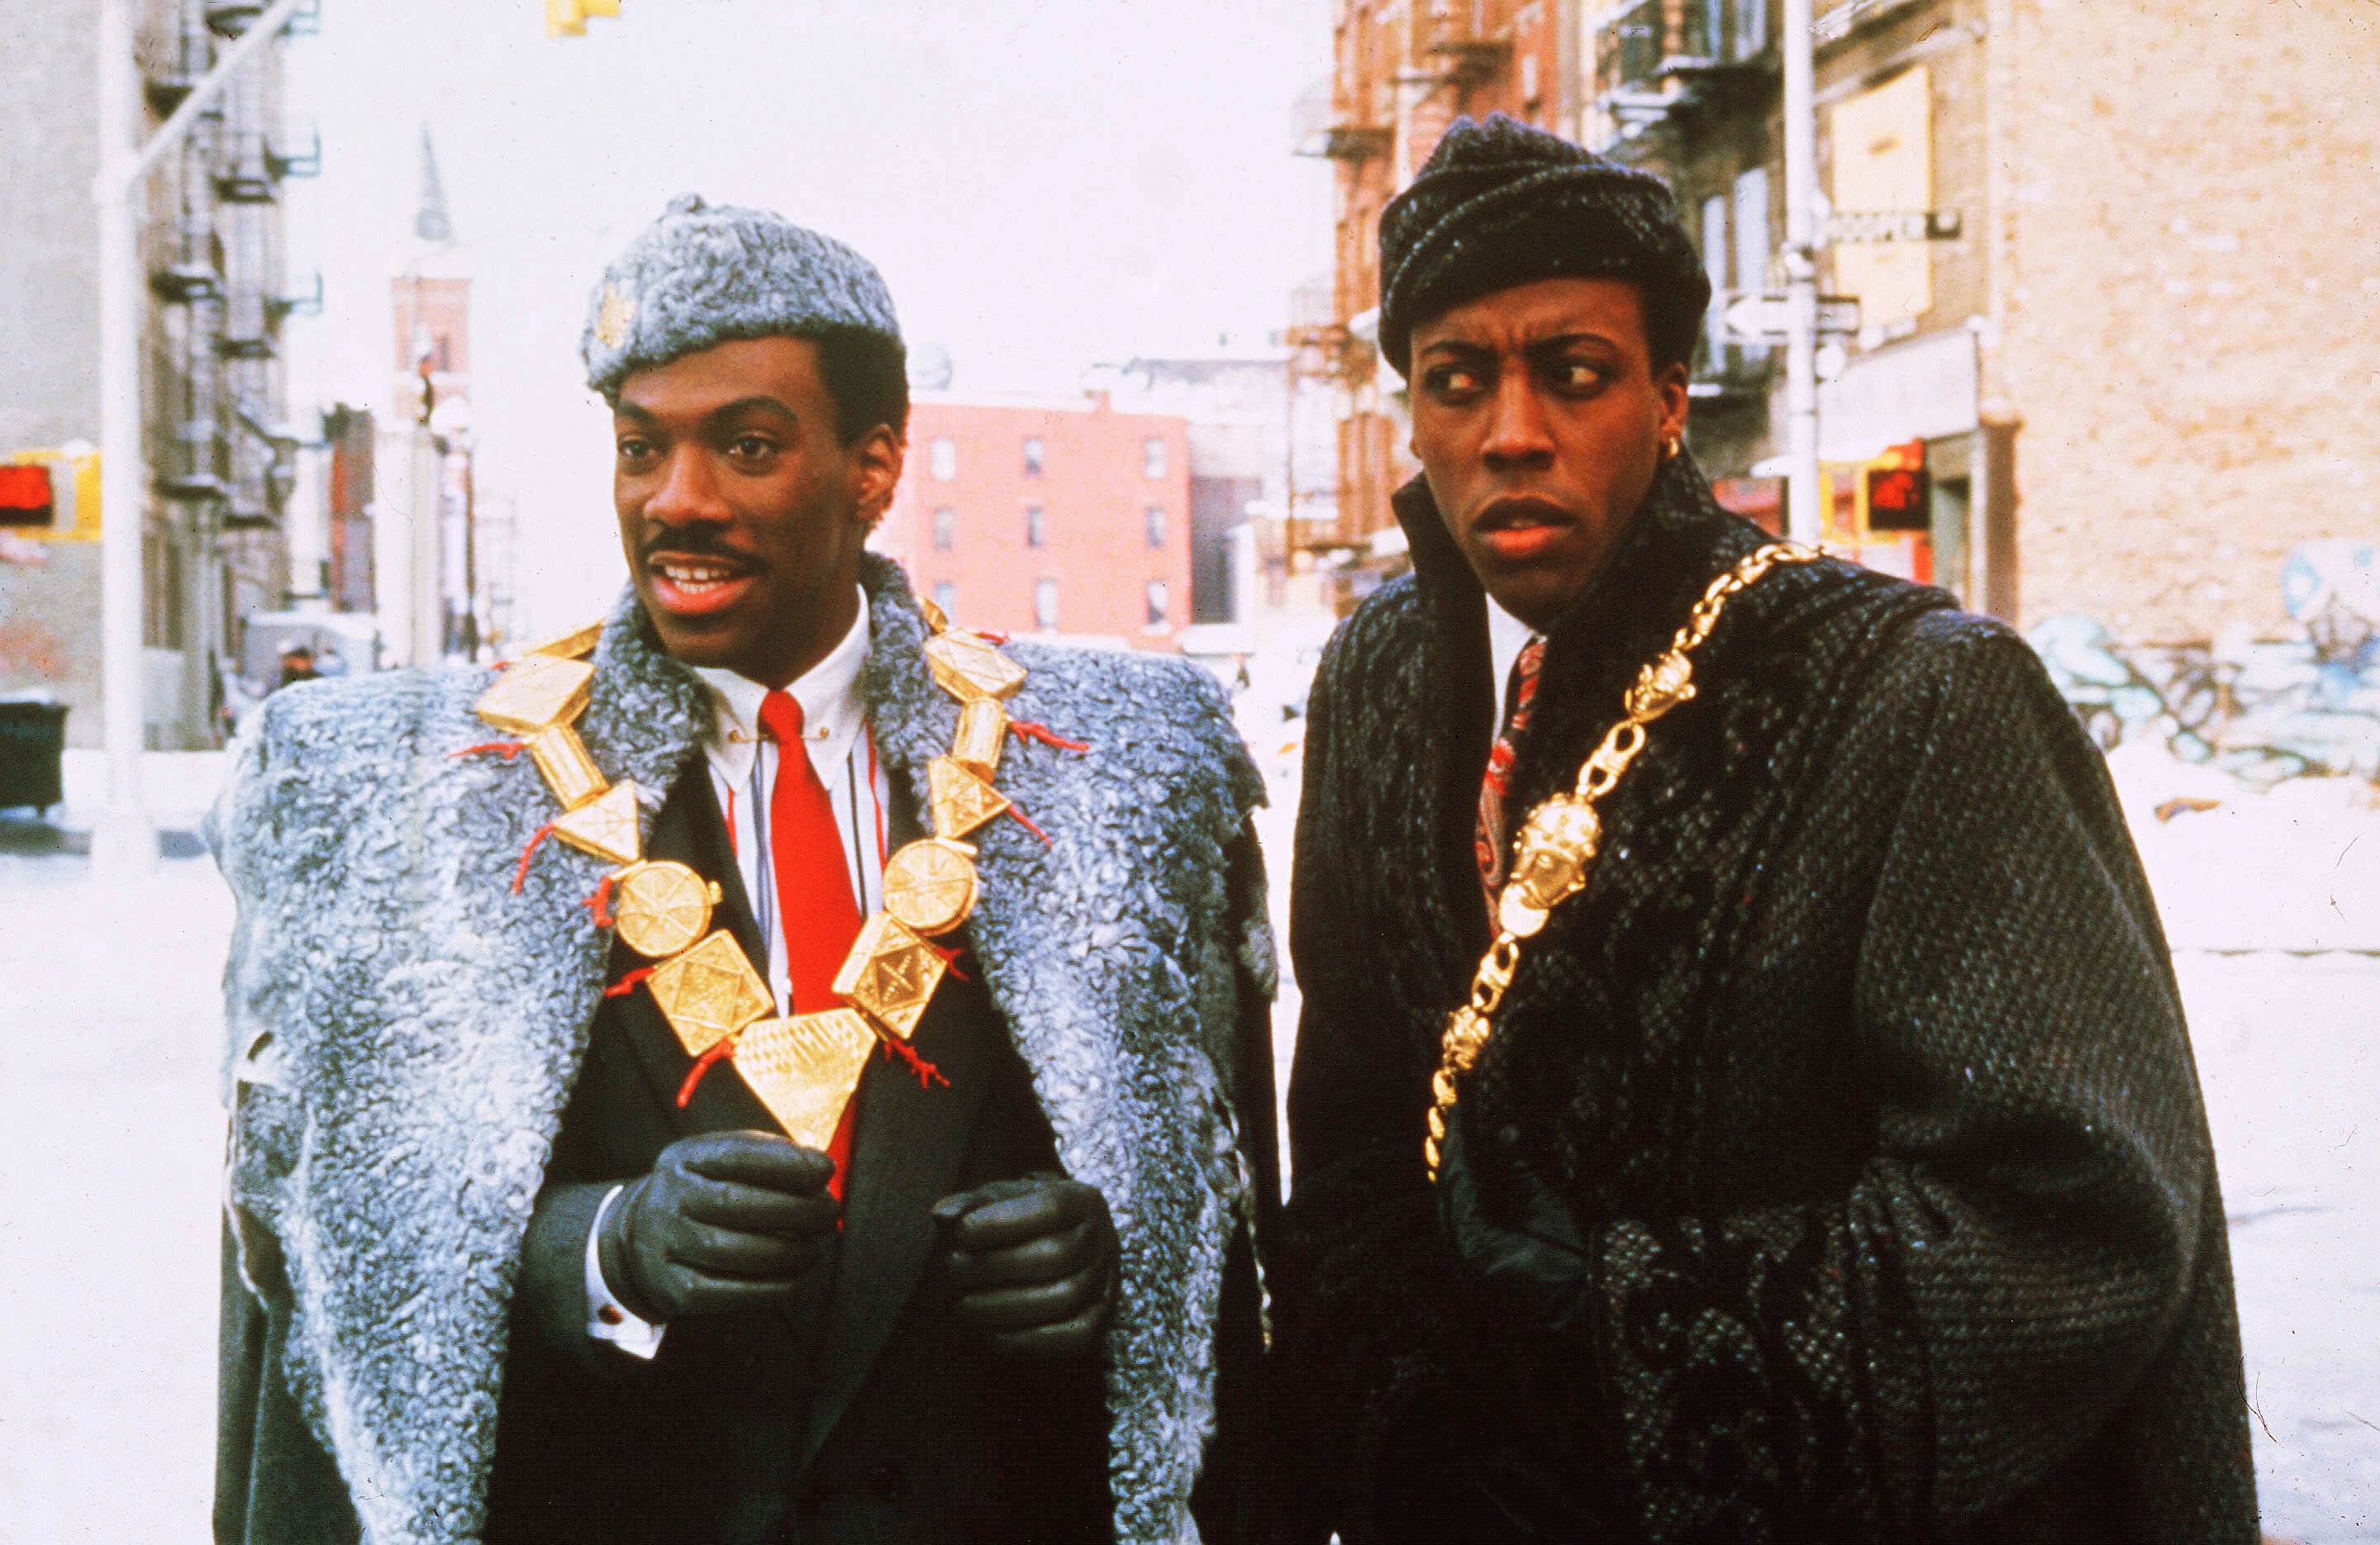 coming to america characters